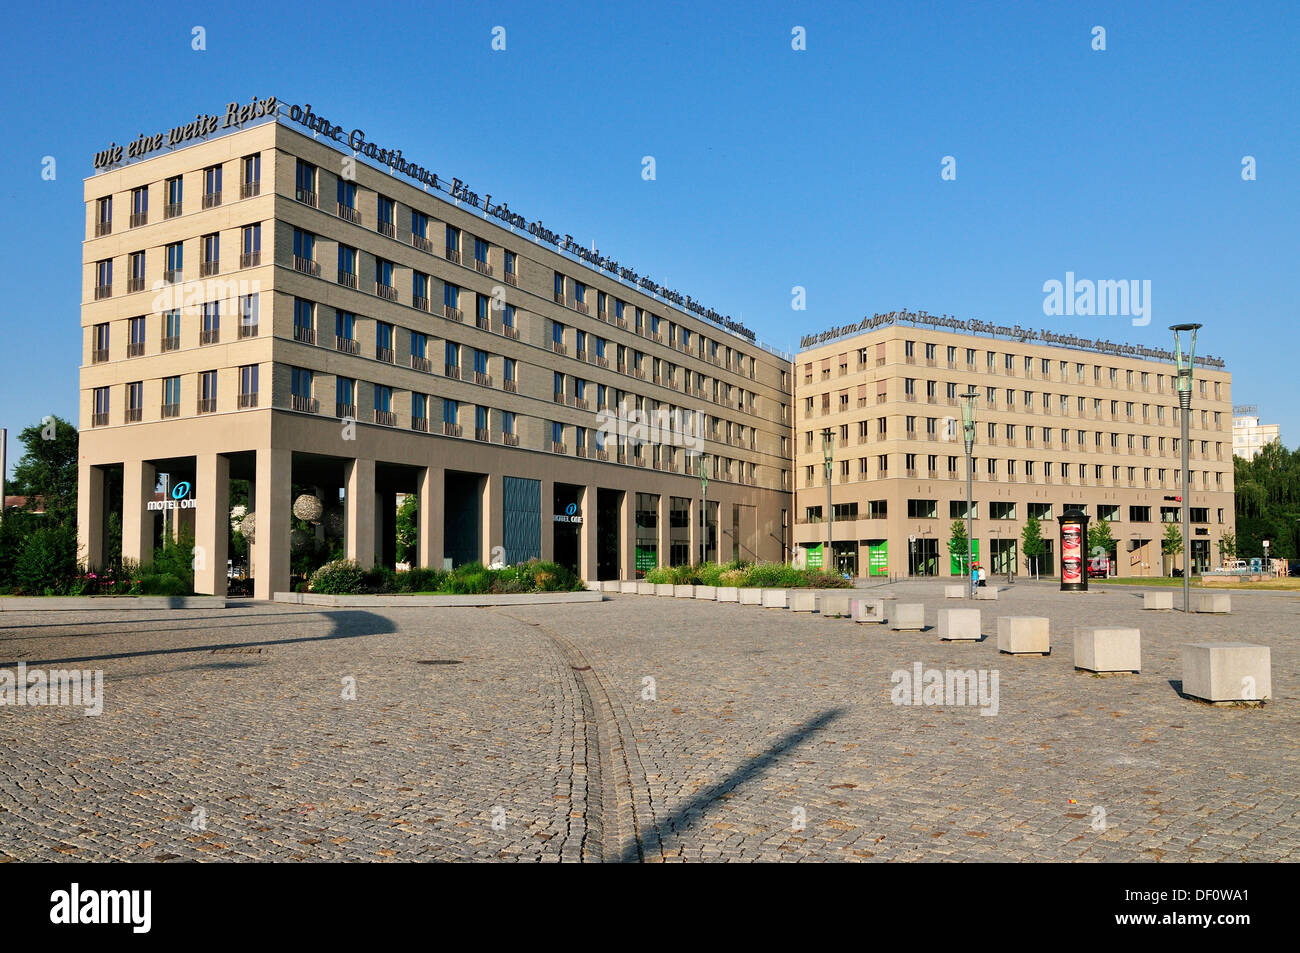 motel one on the postal place, Dresden, motel one am Postplatz - Stock Image